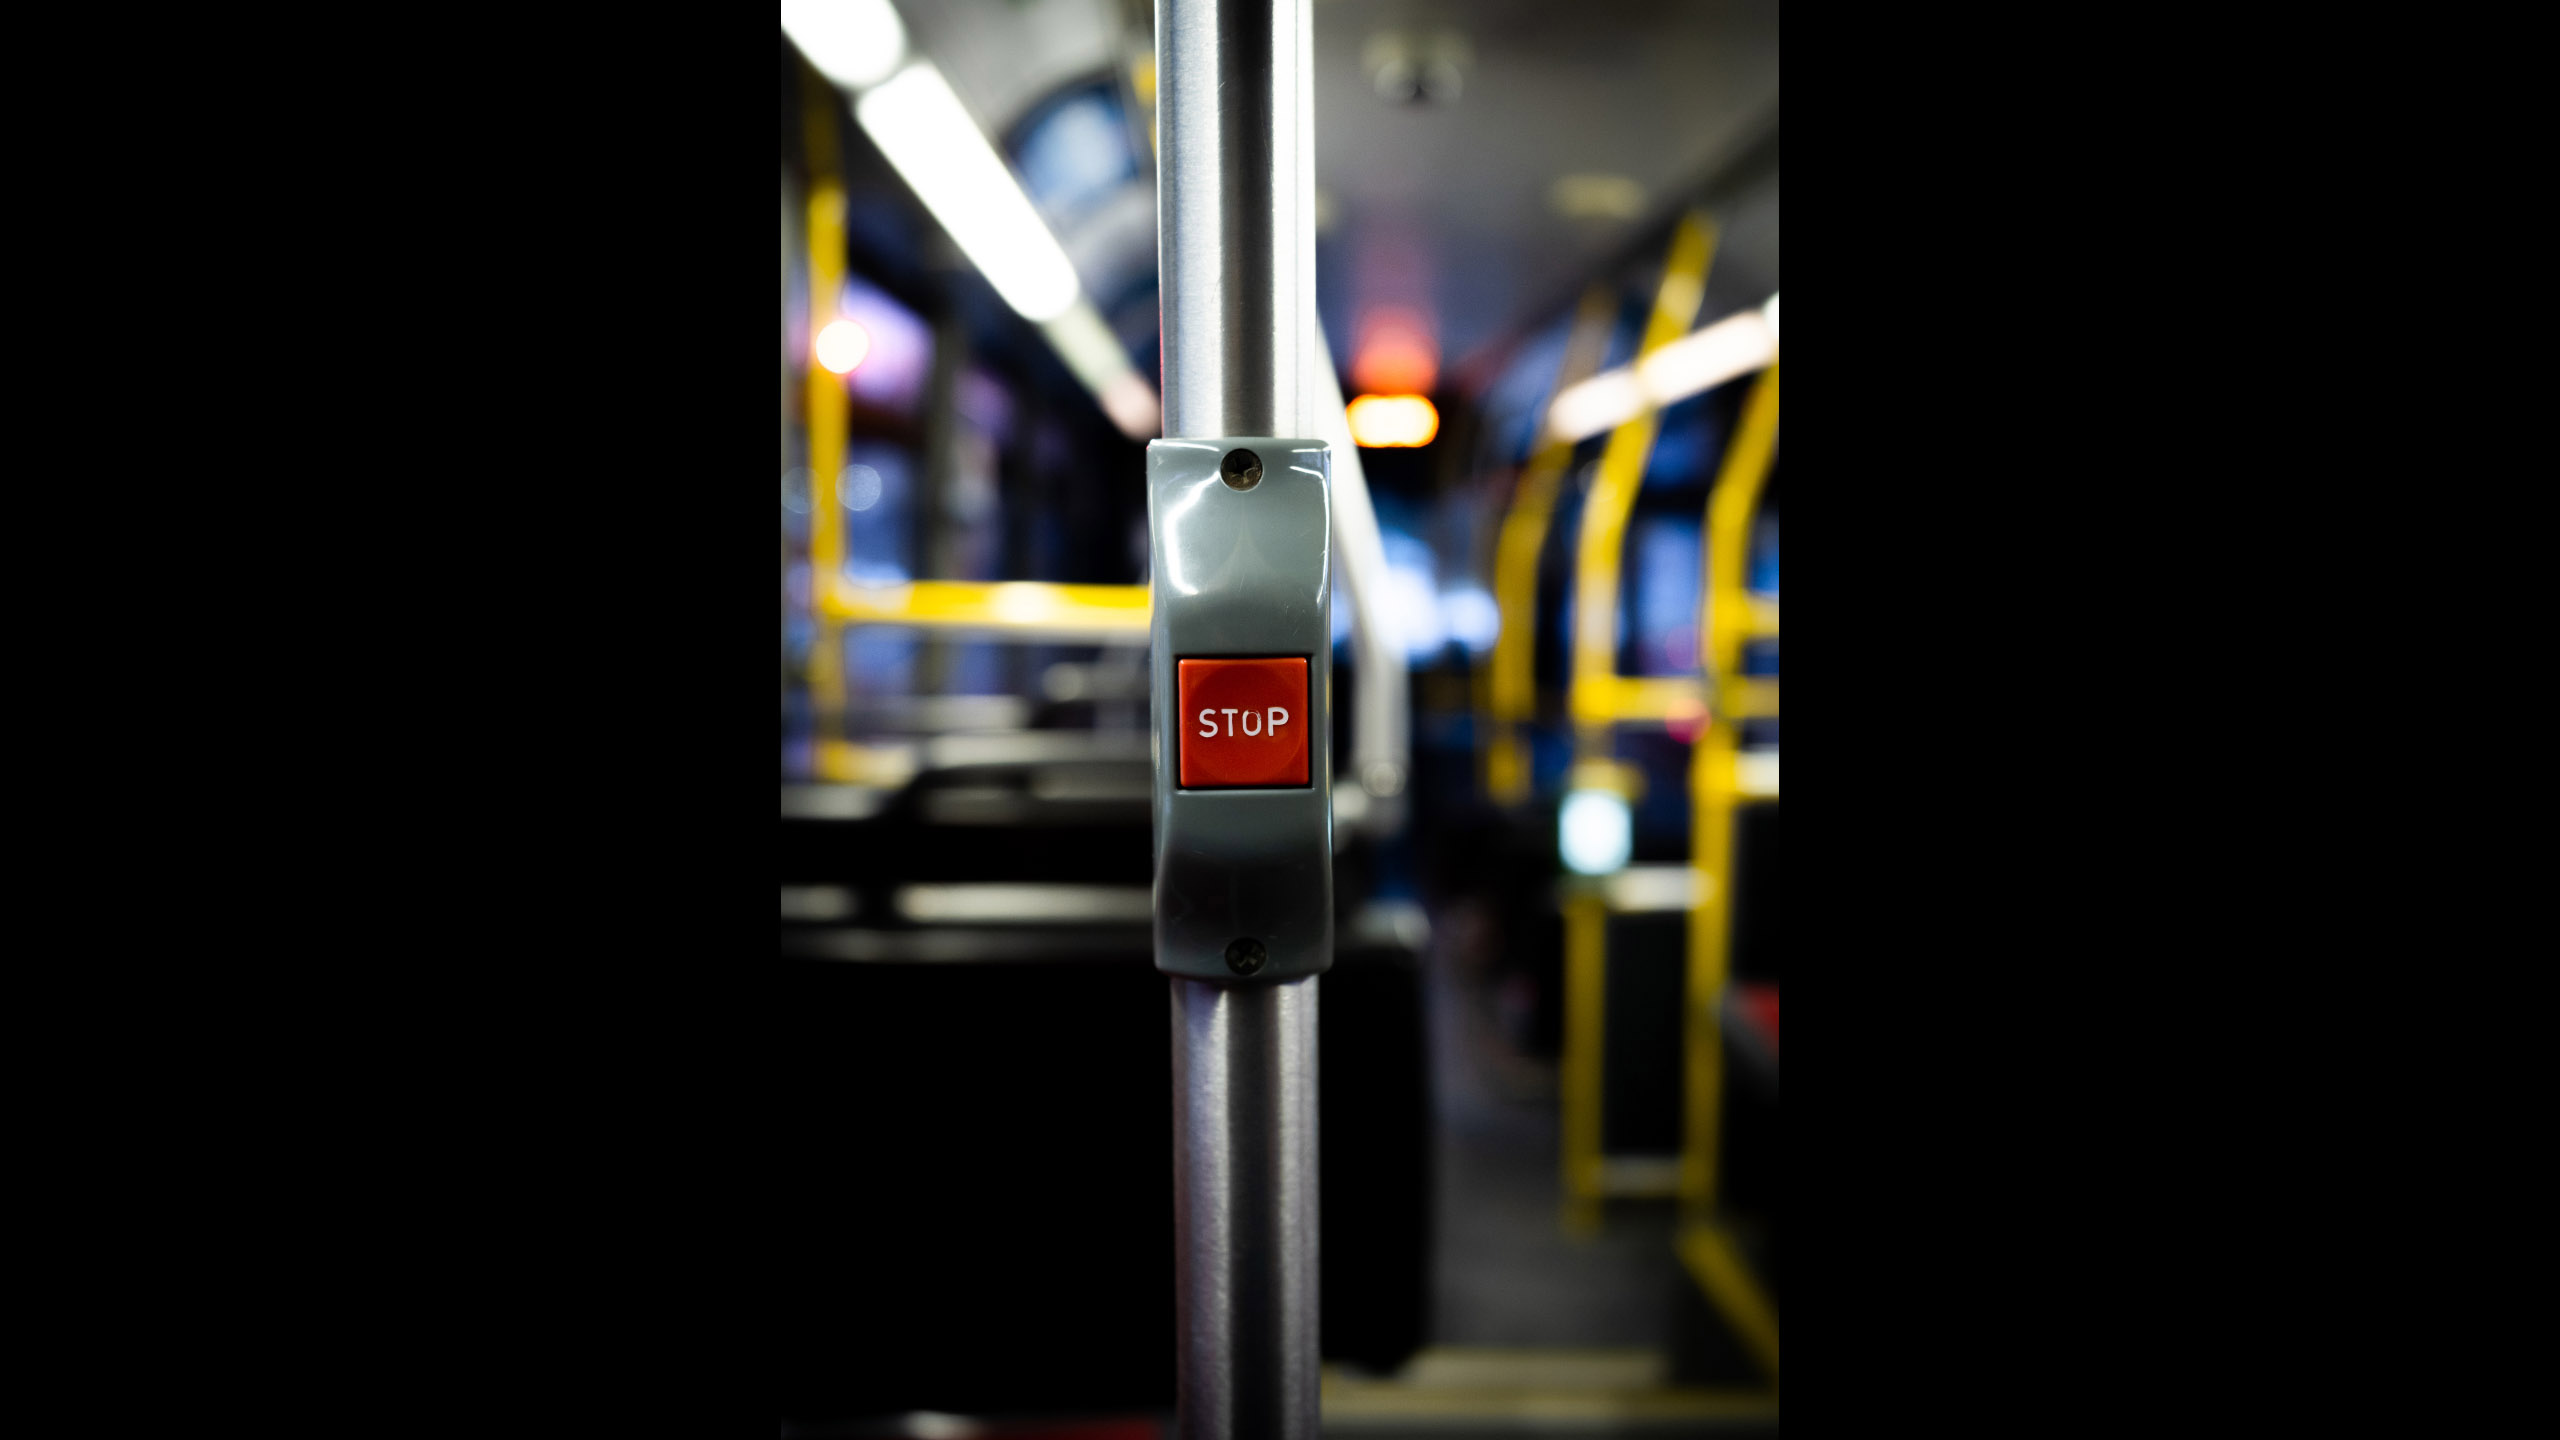 interior of a bus features the red stop button